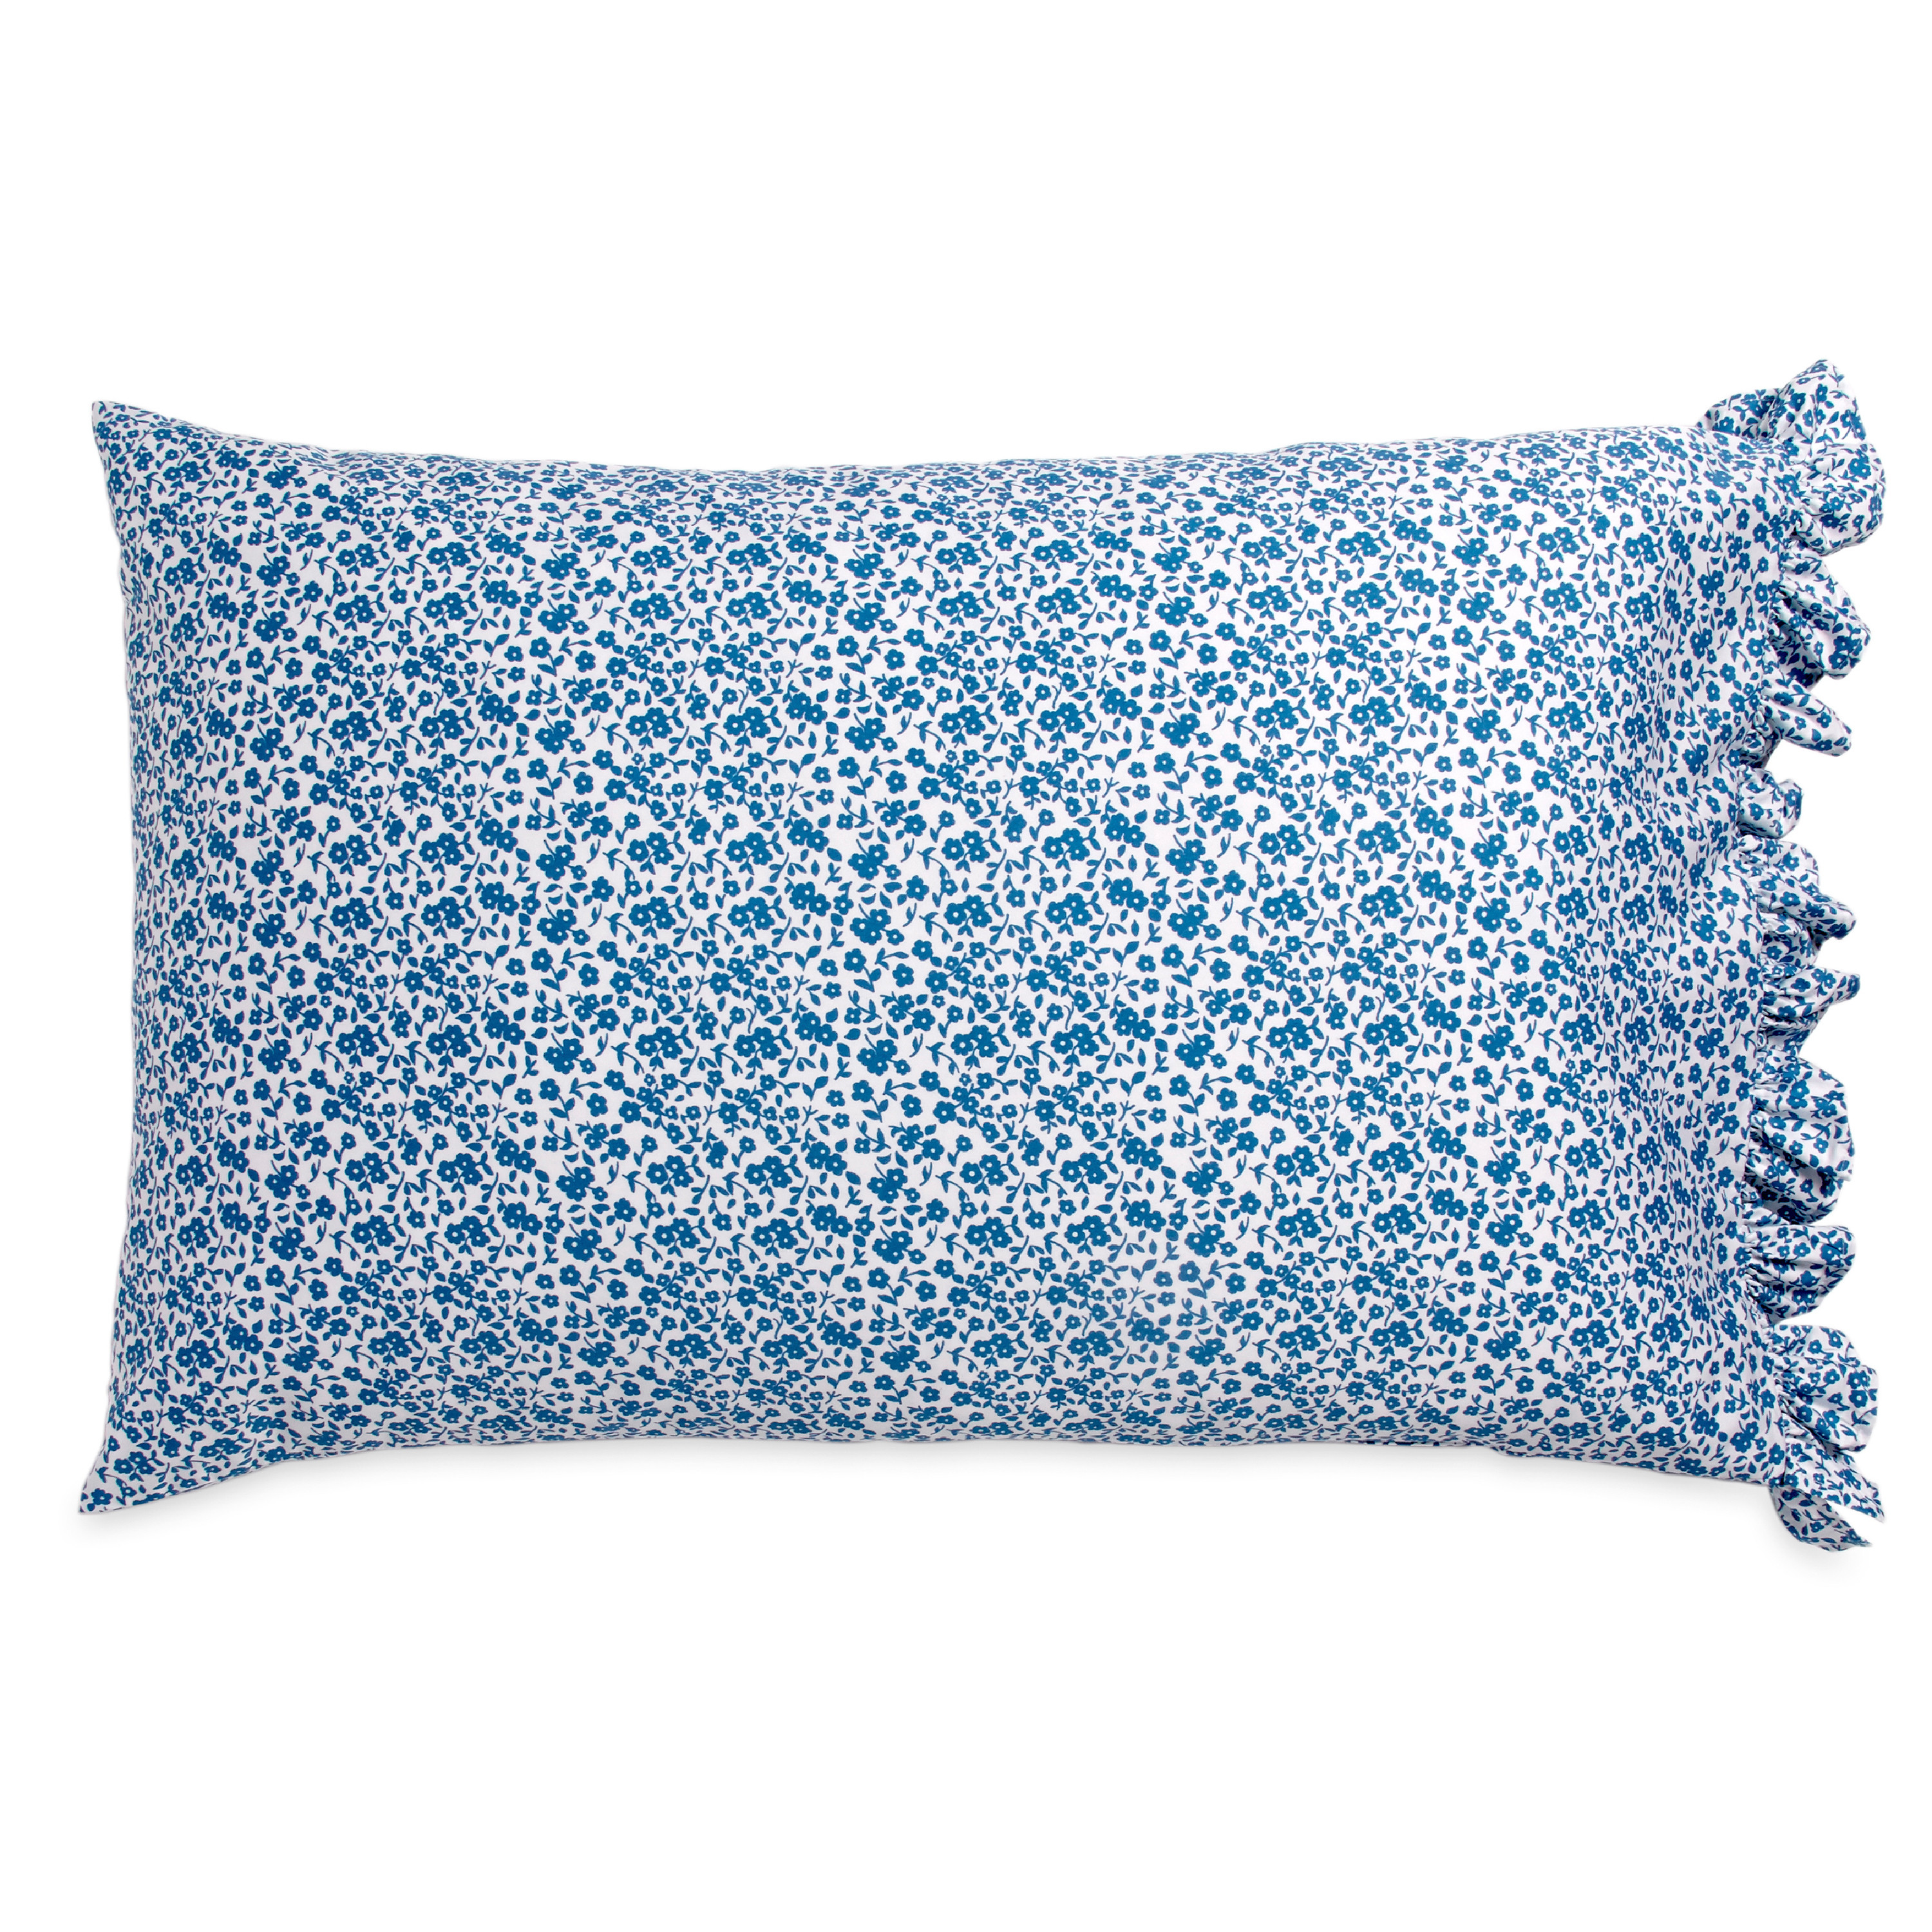 The Pioneer Woman Calico Floral Ruffle Pillowcase Set